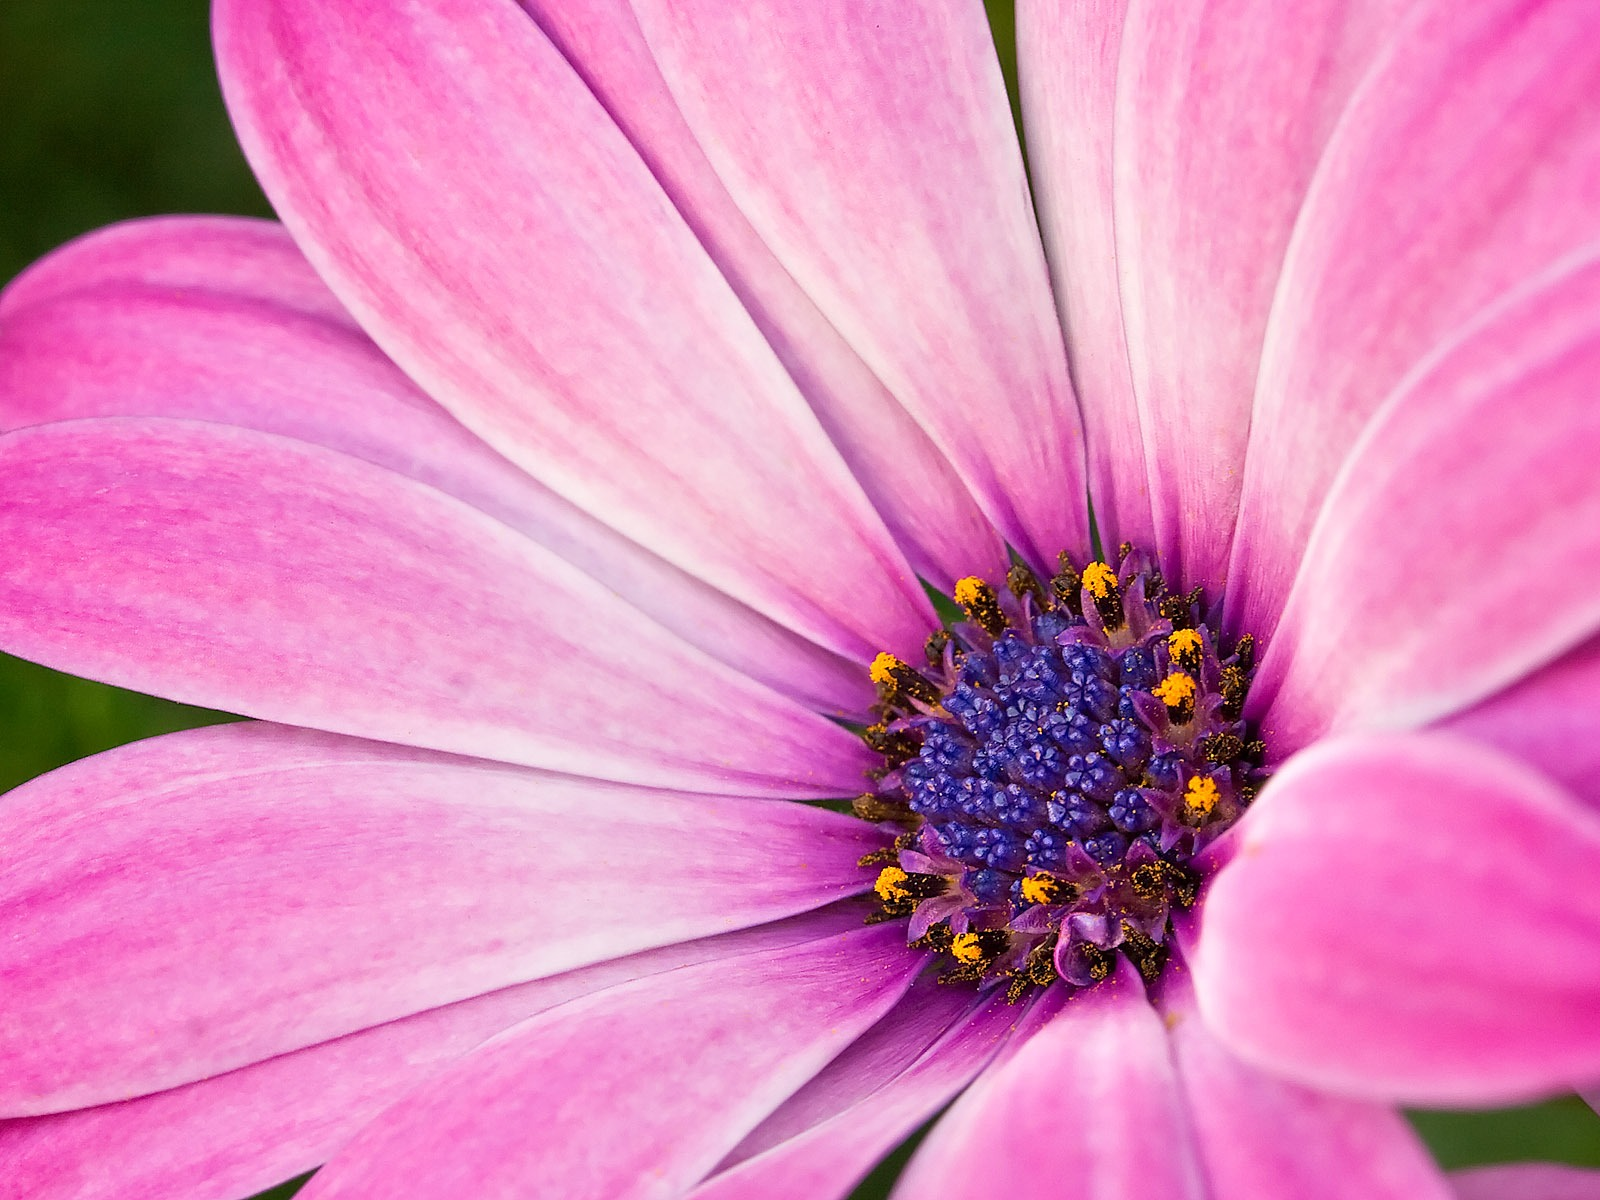 Bright pink flower 27839 1600x1200 px bright pink flower 27839 mightylinksfo